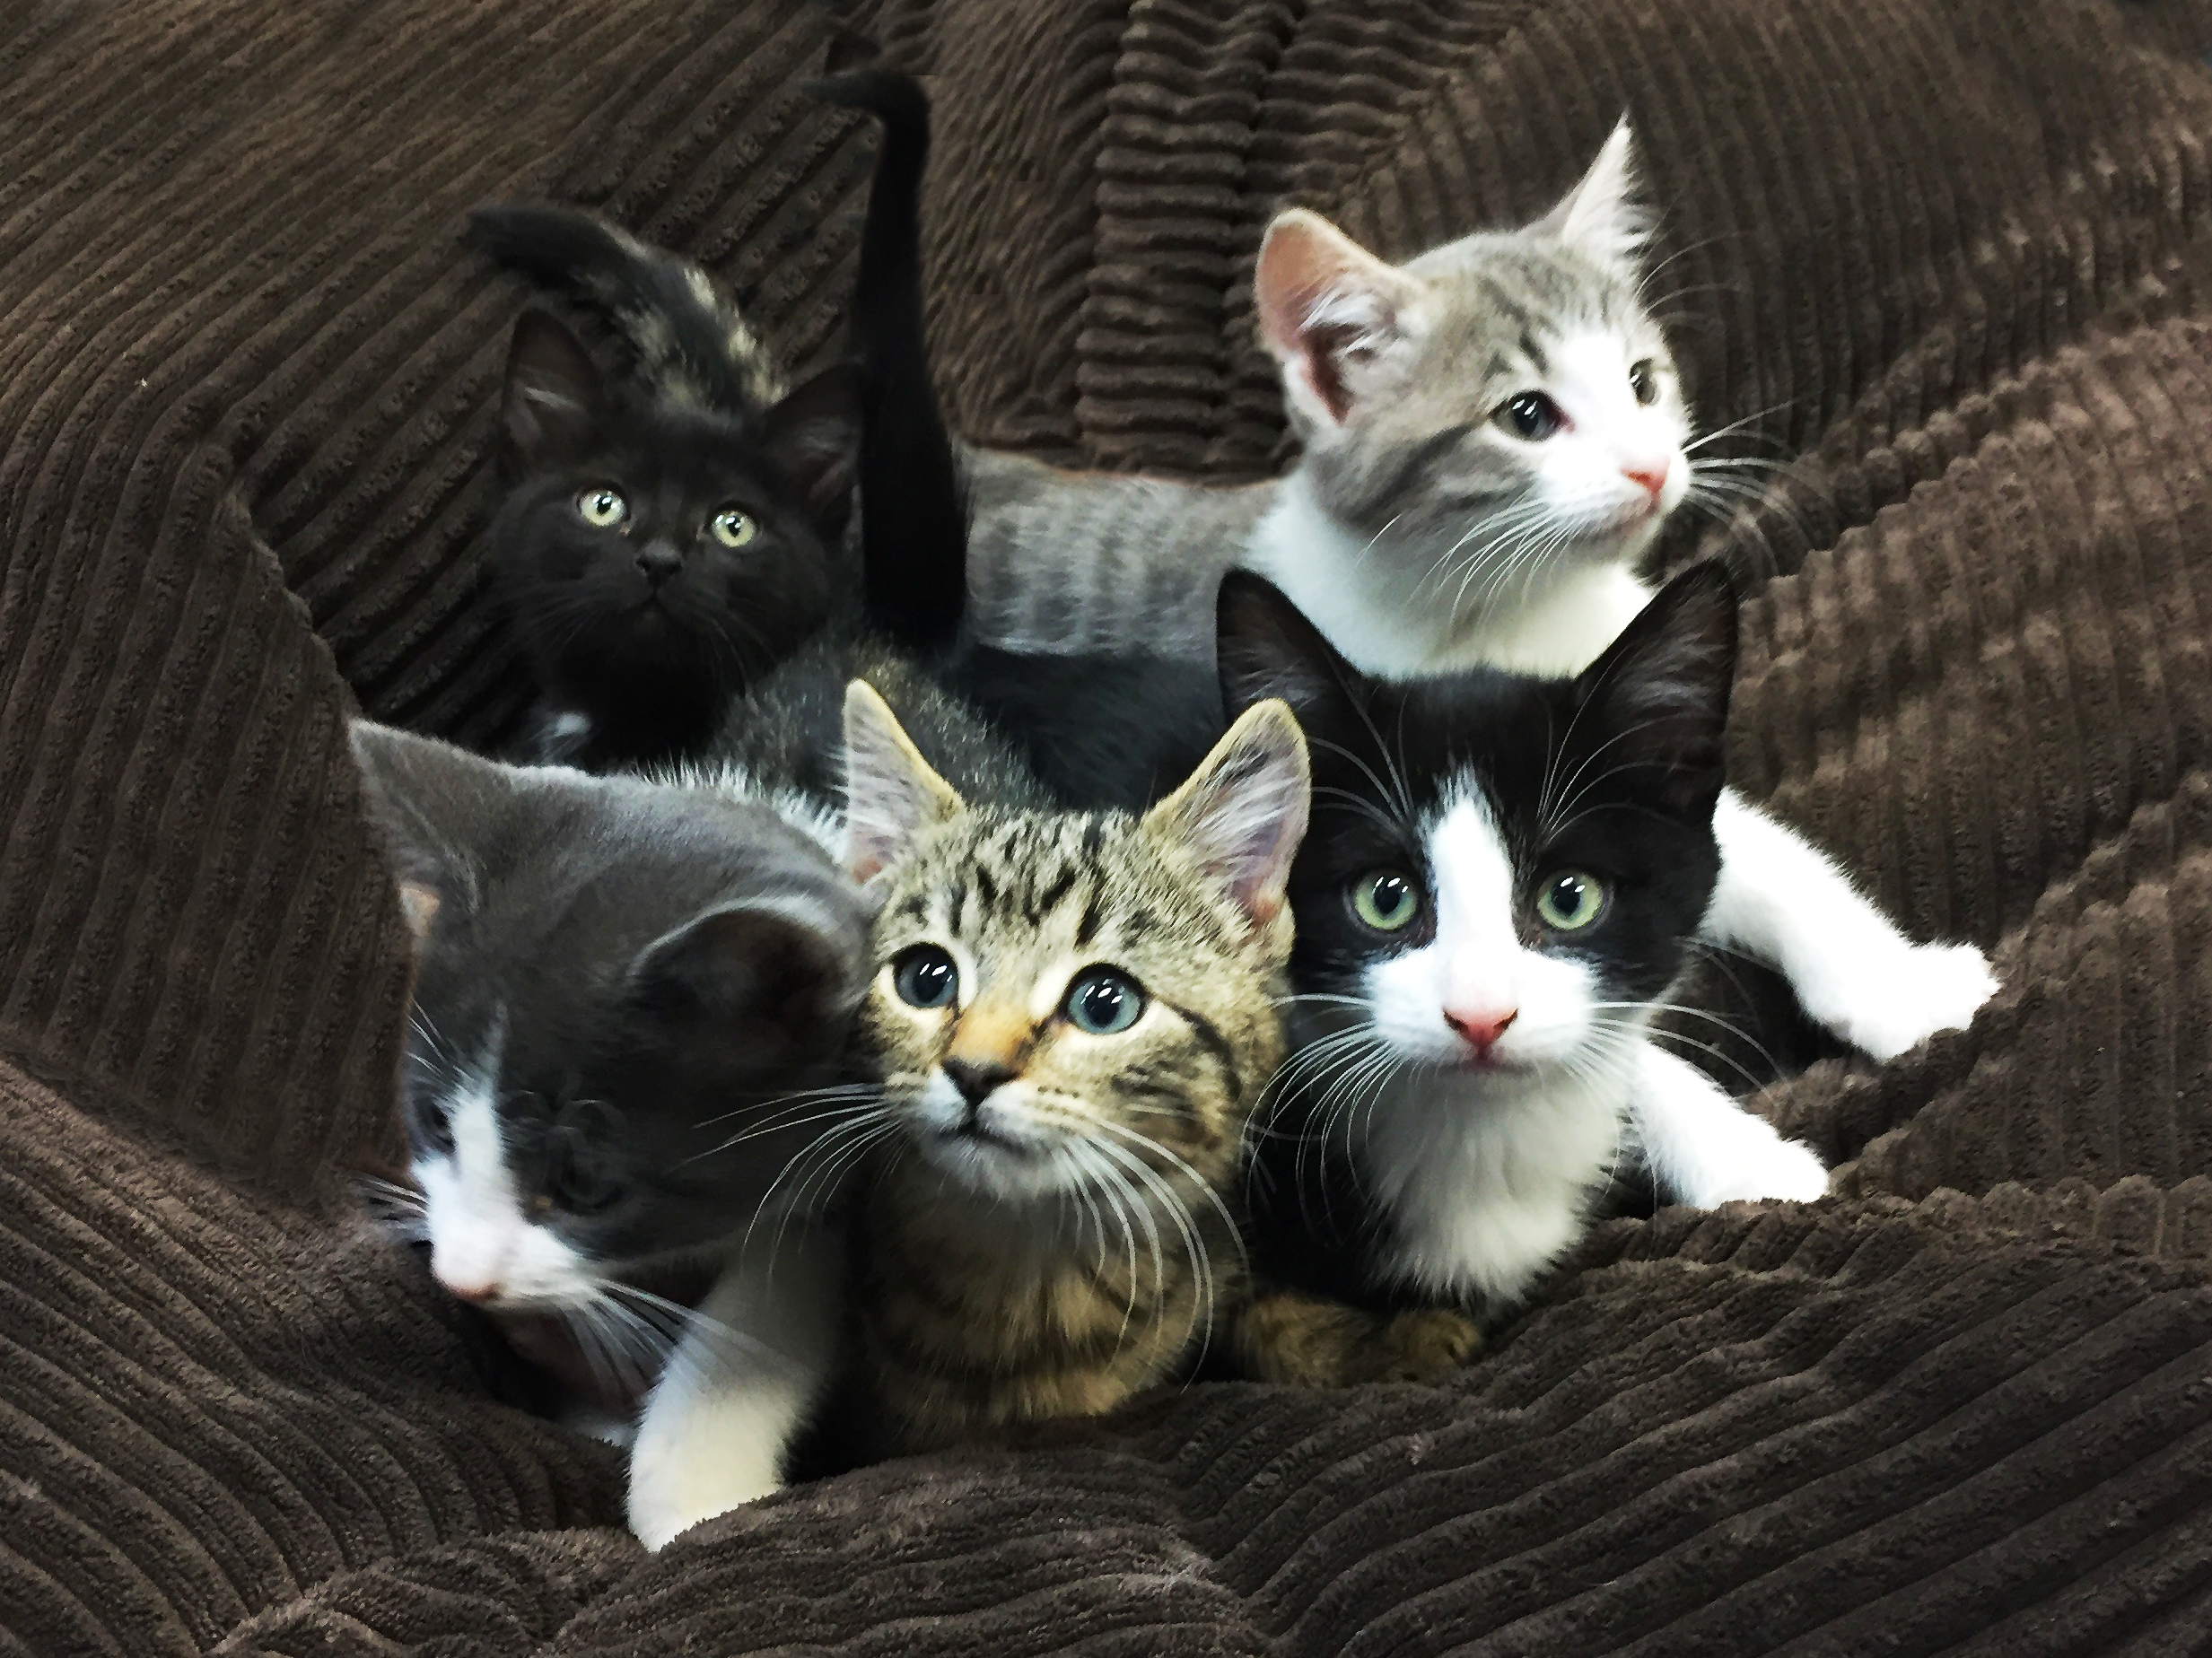 Kittens in need of loving home